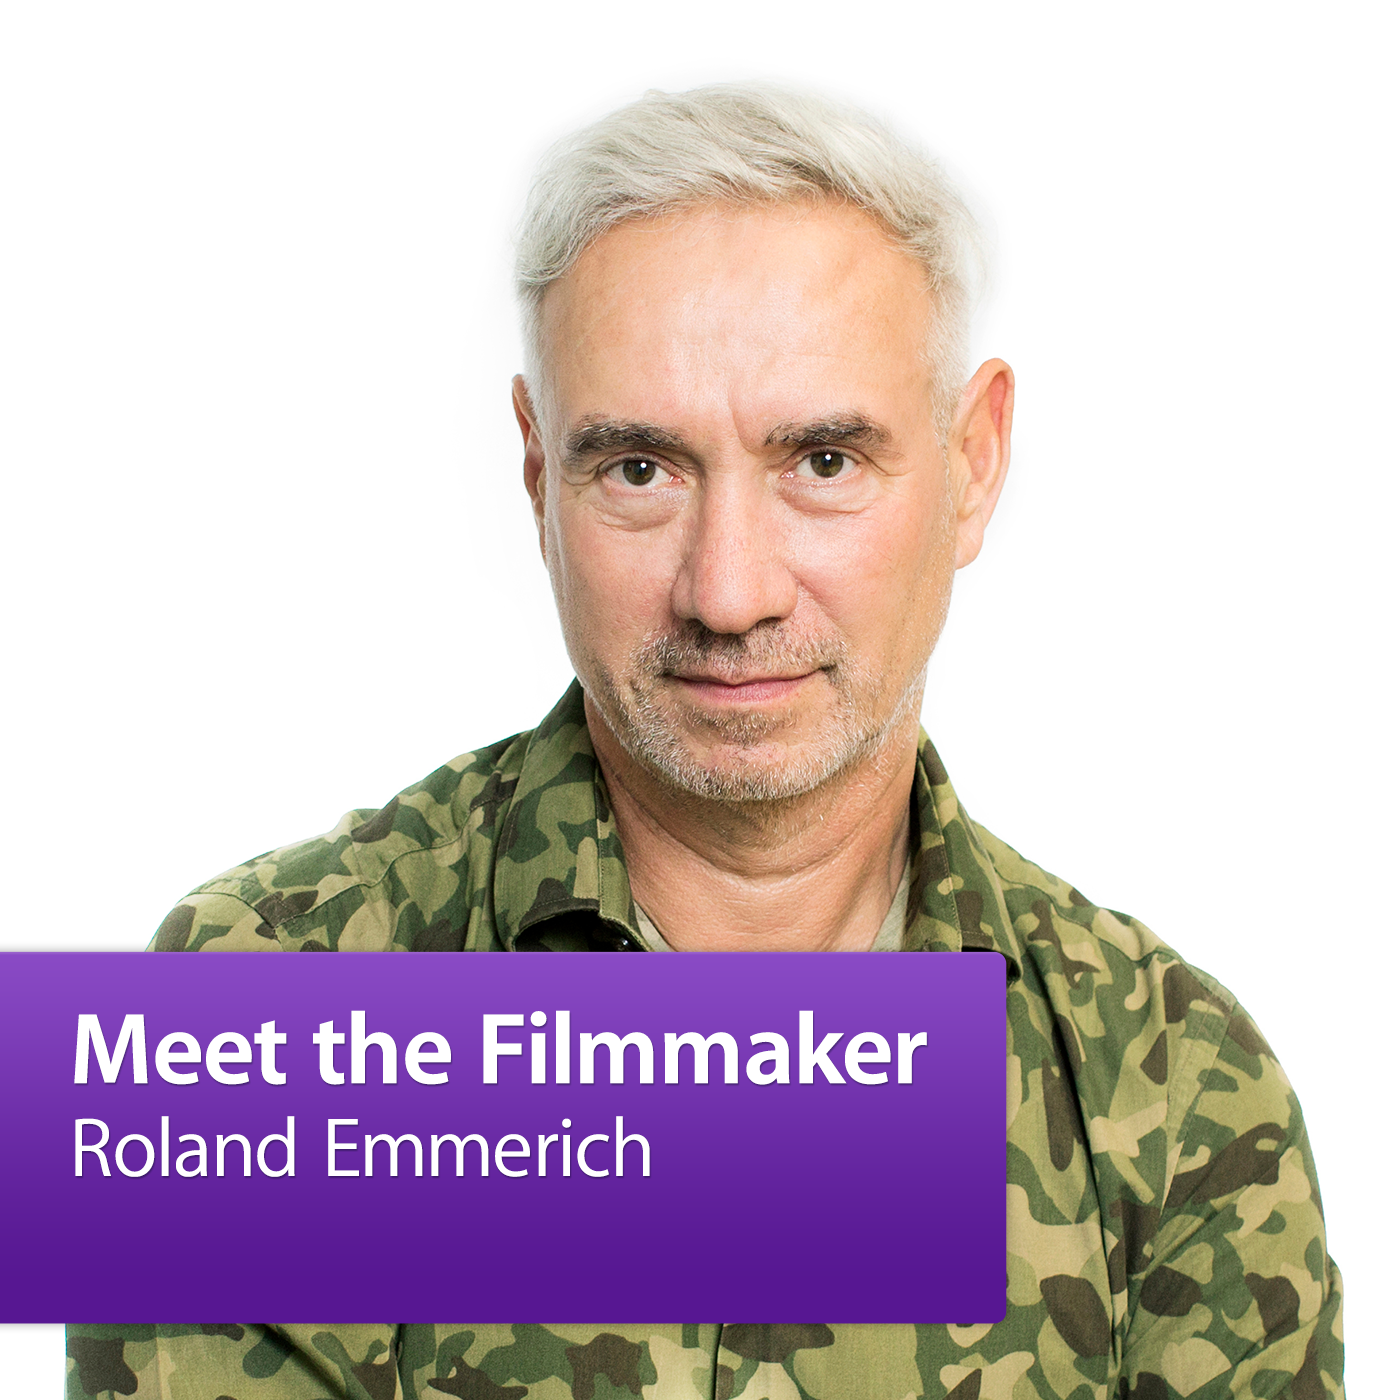 Roland Emmerich: Meet the Filmmaker